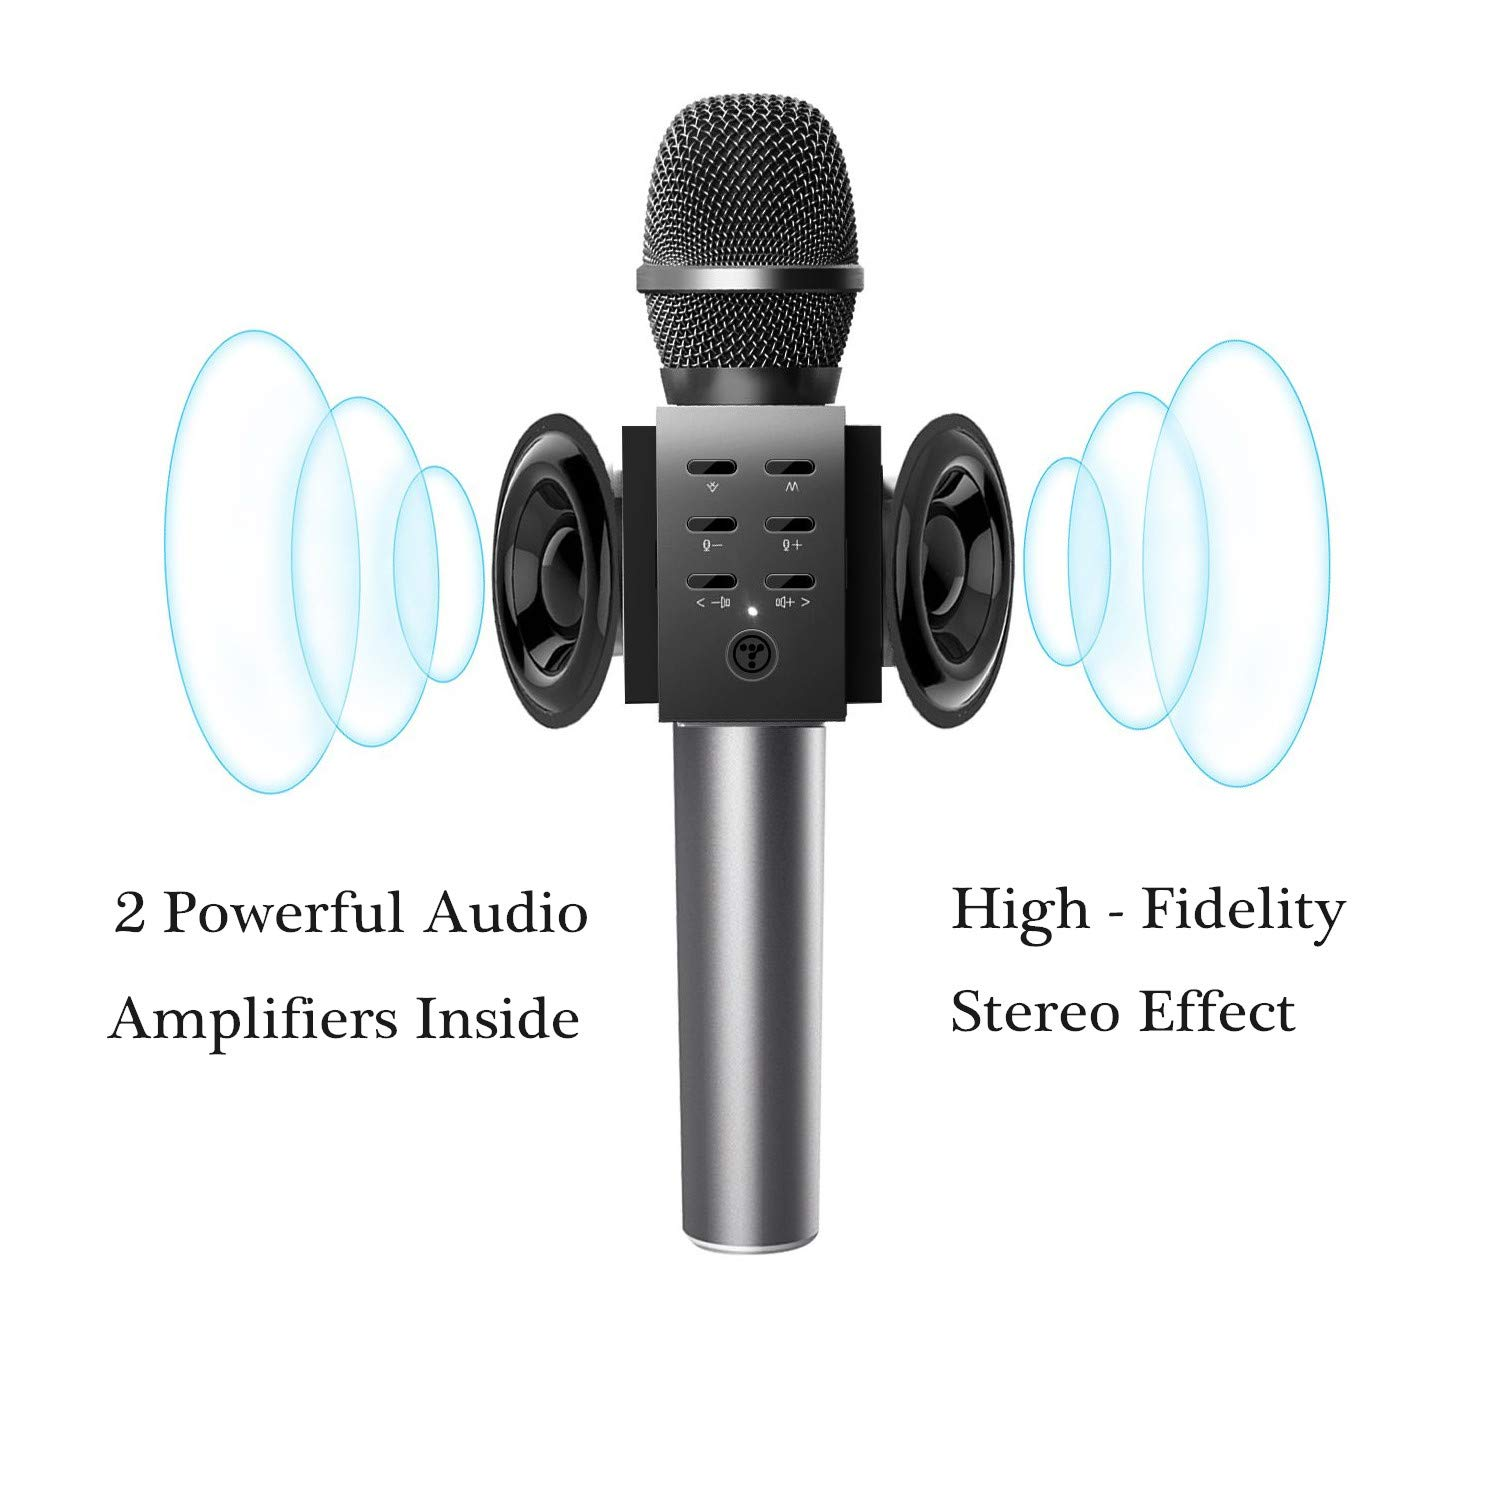 TOSING Wireless Karaoke Microphone for Kids, Top Birthday Party Gifts Ideas for Teens and Adults, Bluetooth Handheld Karaoke Machine, Superior Surrounding, Compatible with iPhone Android Phones by TOSING (Image #3)